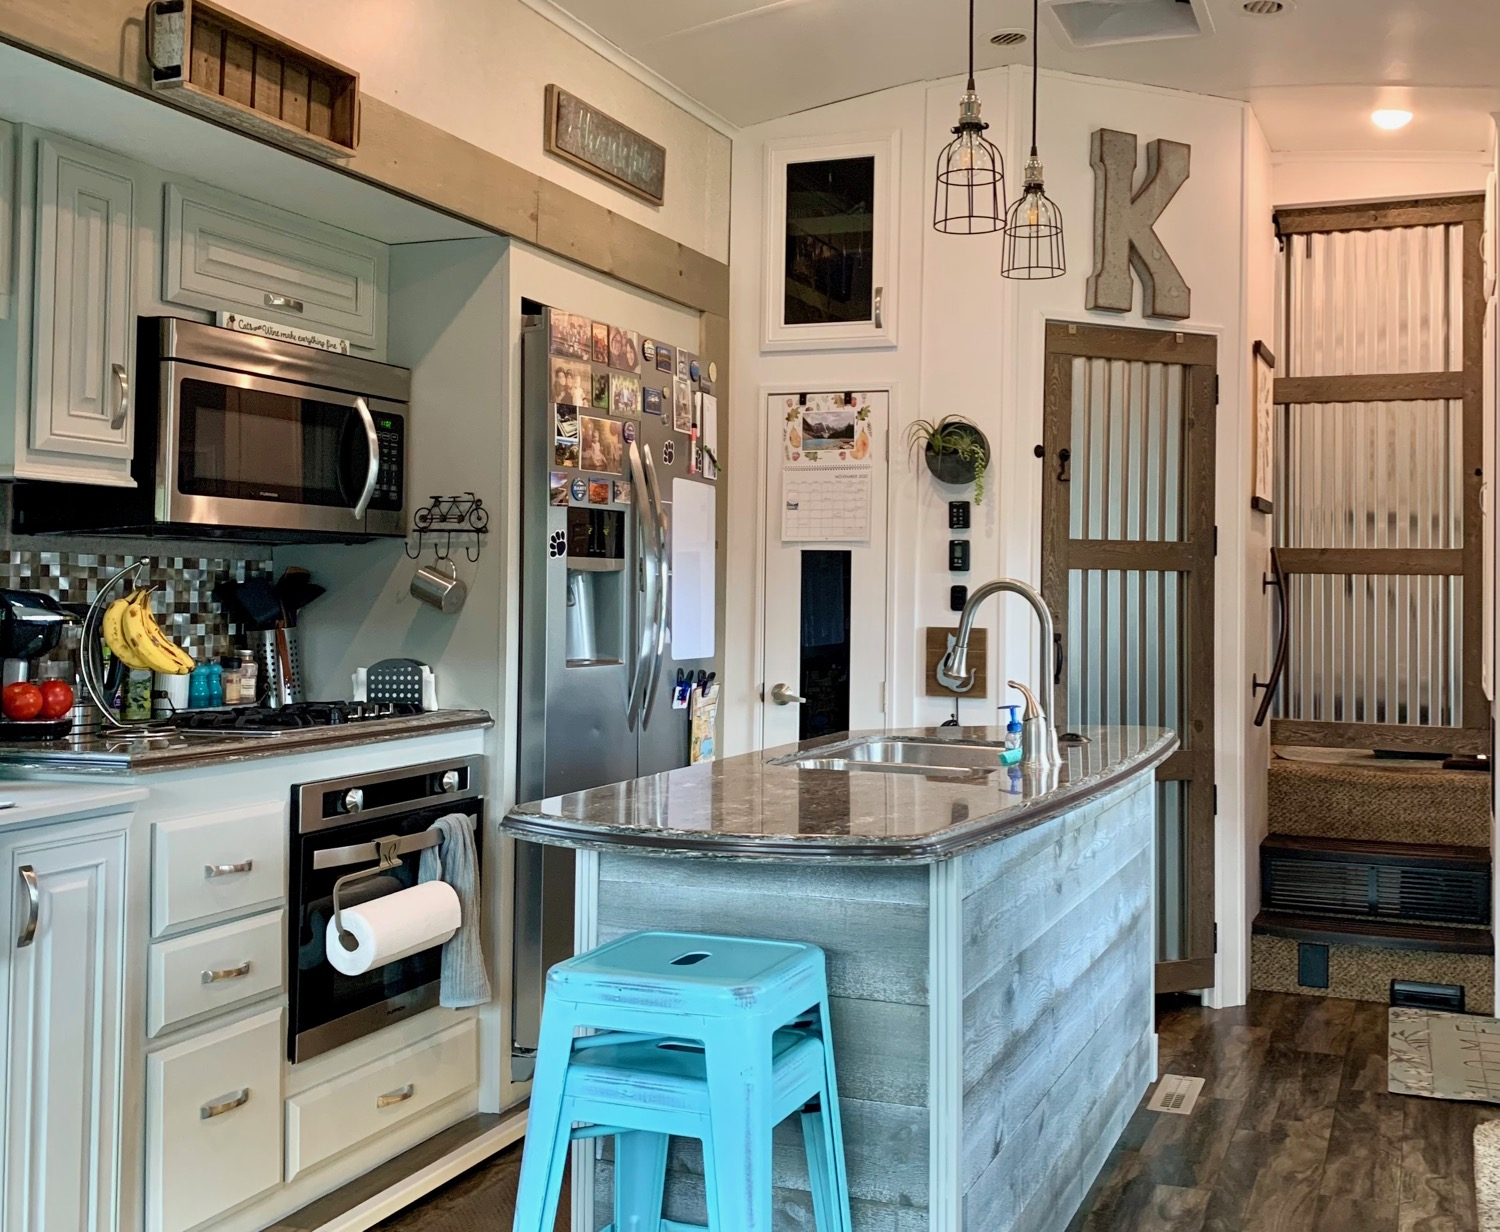 RV makeover: paint, doors, lighting, wood accent on island